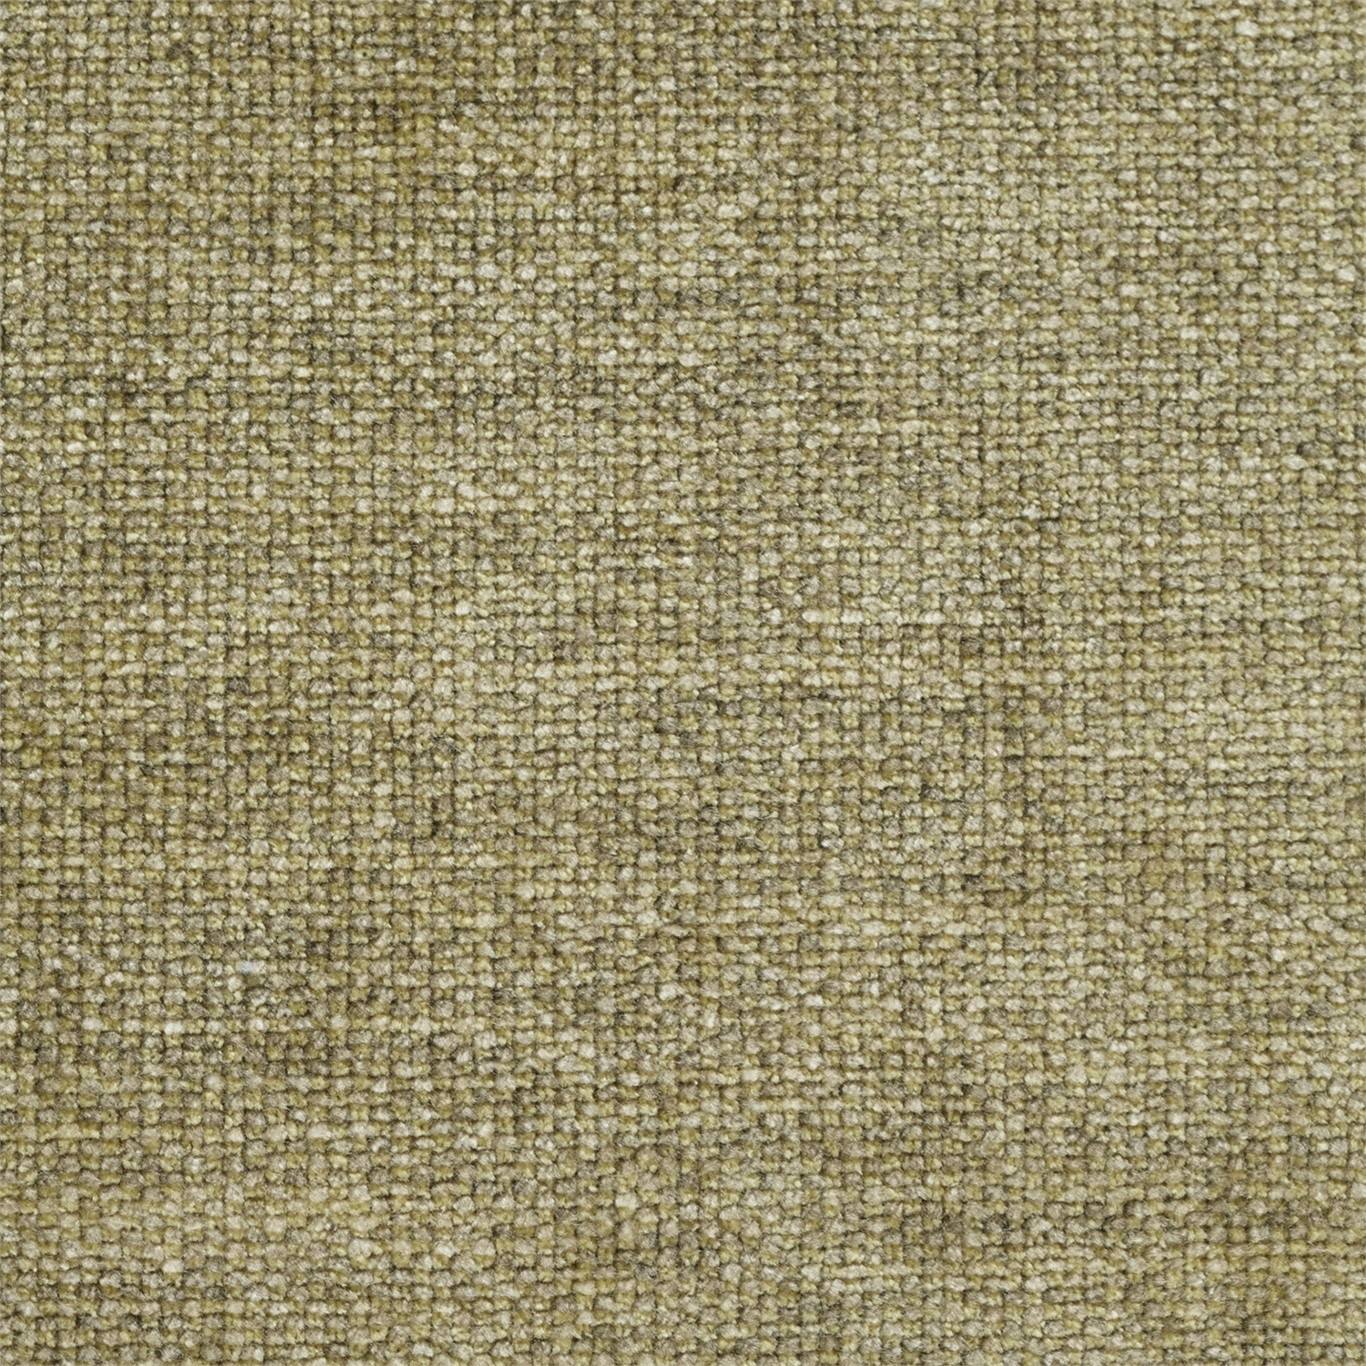 Image of Sanderson Moorbank Oatmeal Fabric 236298